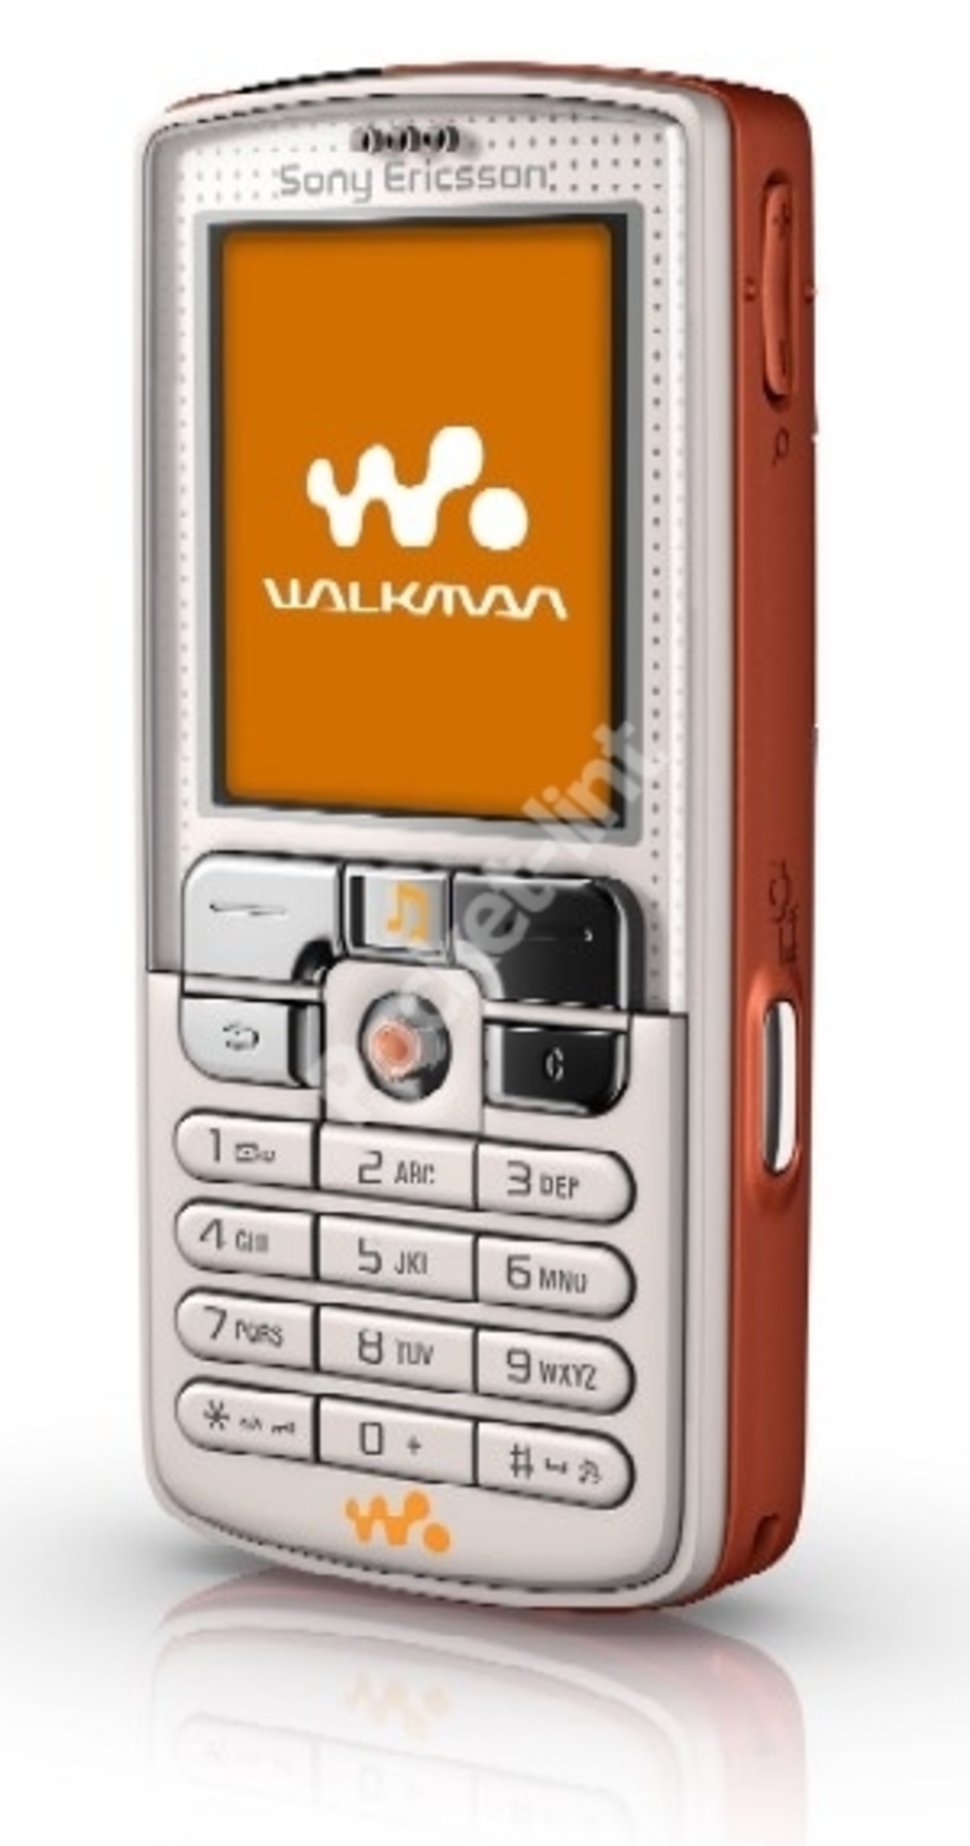 Sony Ericsson W800i mobile phone